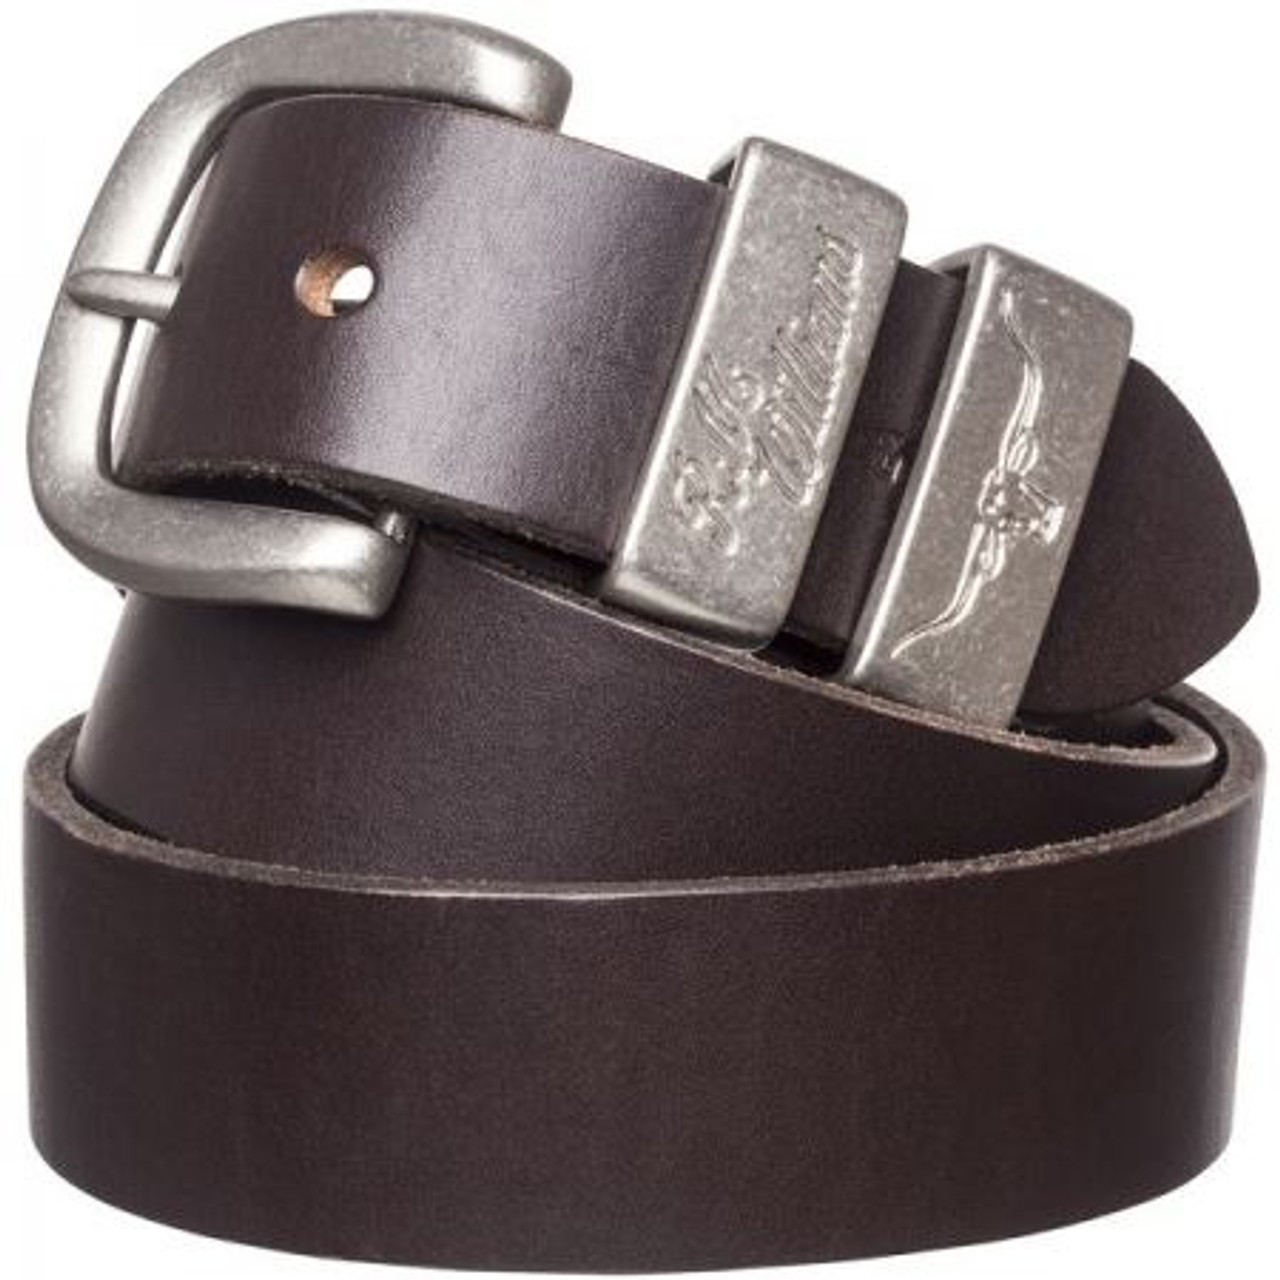 R.M. Williams Mens 3 Piece Buckle Work Belt